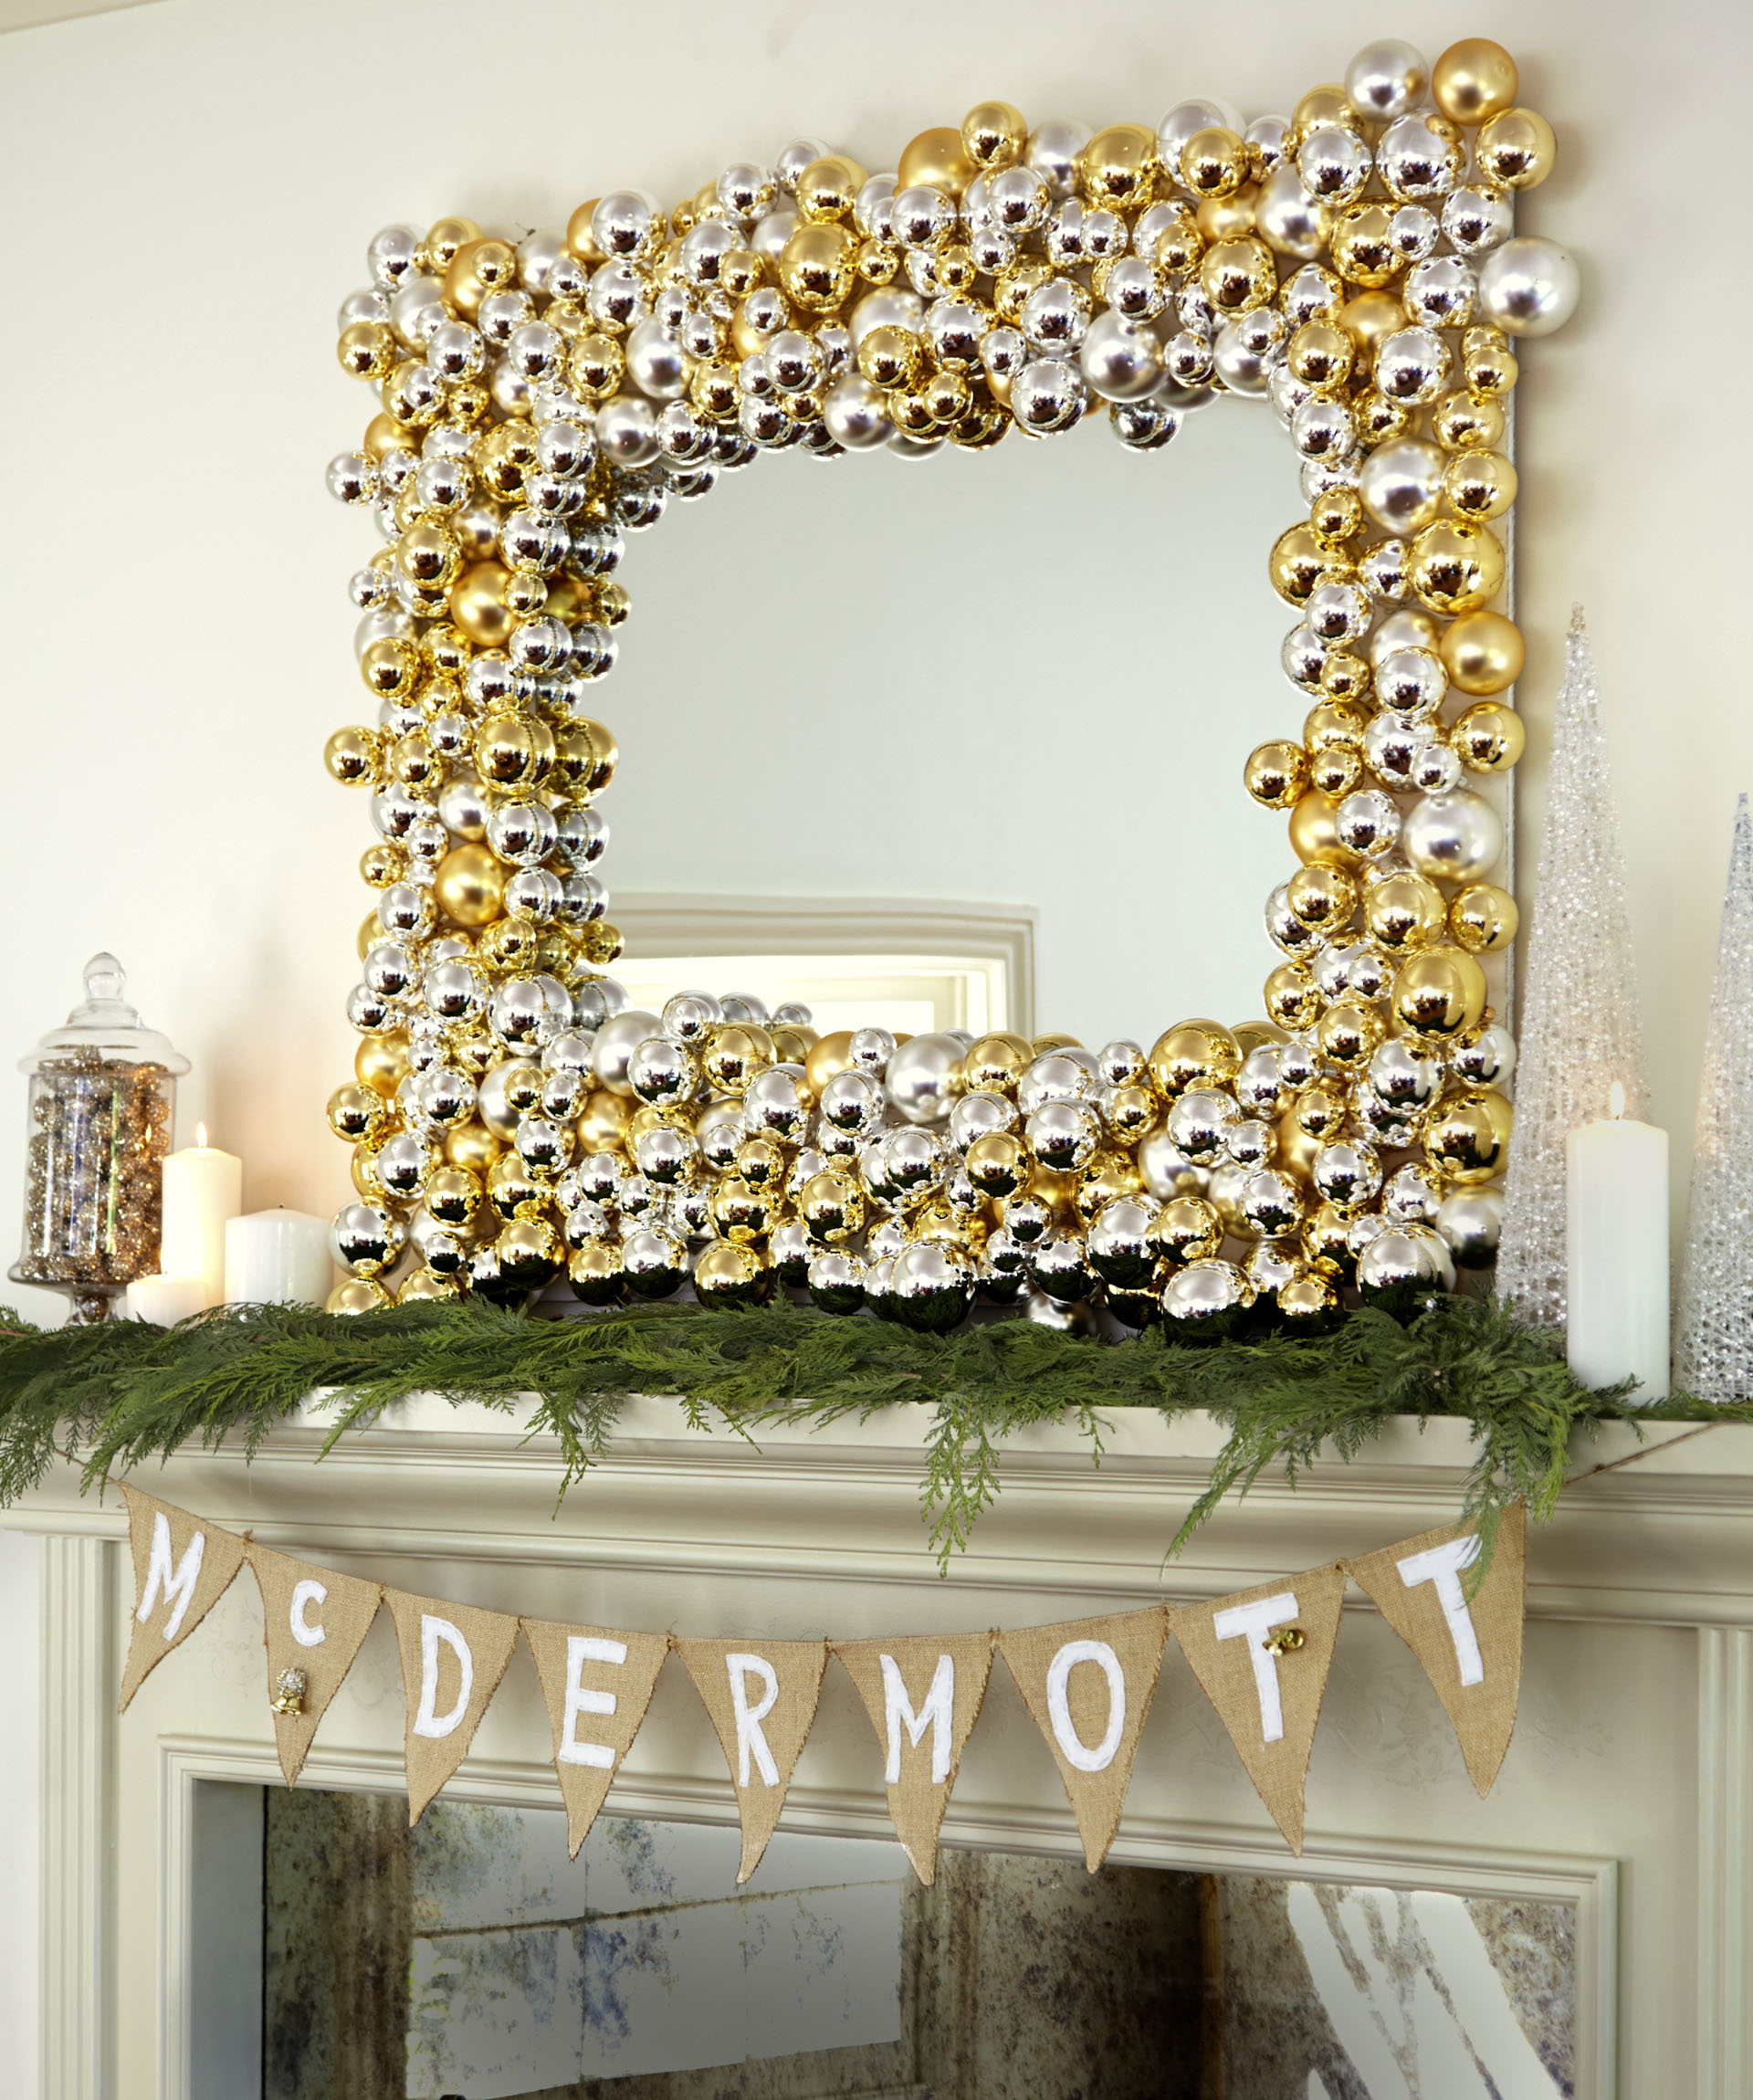 Decoration Ideas: DIY Holiday Decor Ideas From Tori Spelling